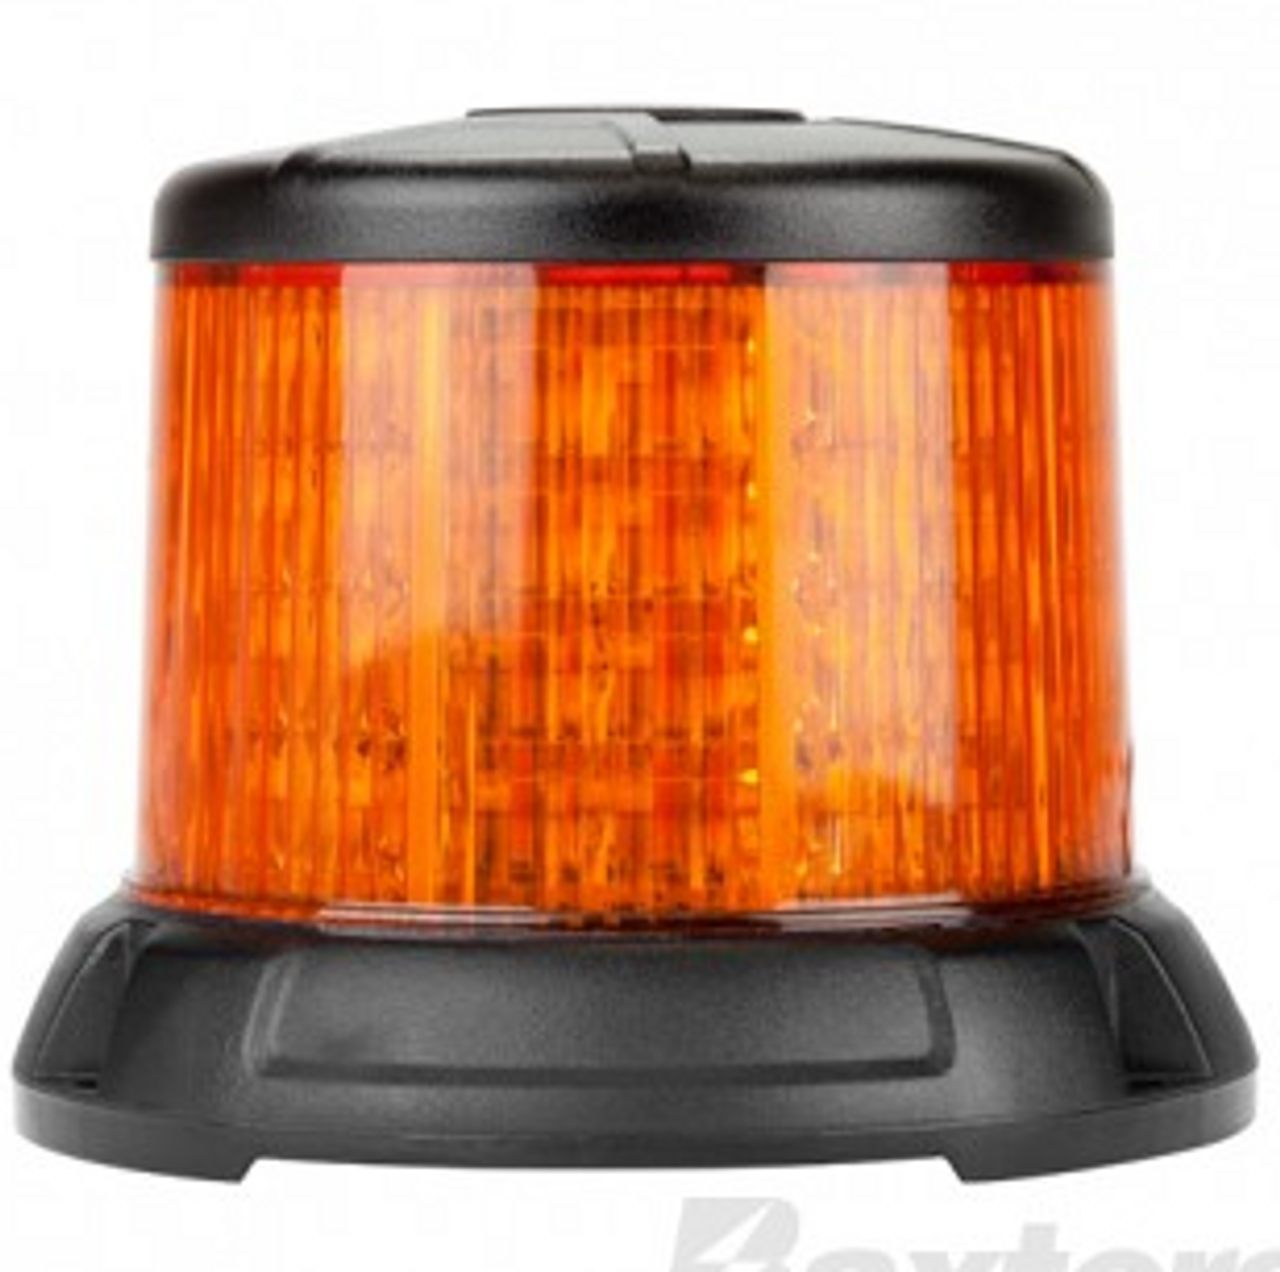 RB122MY - Low Profile, Amber Safety Rotation and Strobe Beacon. Magnet Mount.  Micro II Dual Stack, 33 watts RB122MY. Class 1 Certified. Roadvision. Ultimate LED.